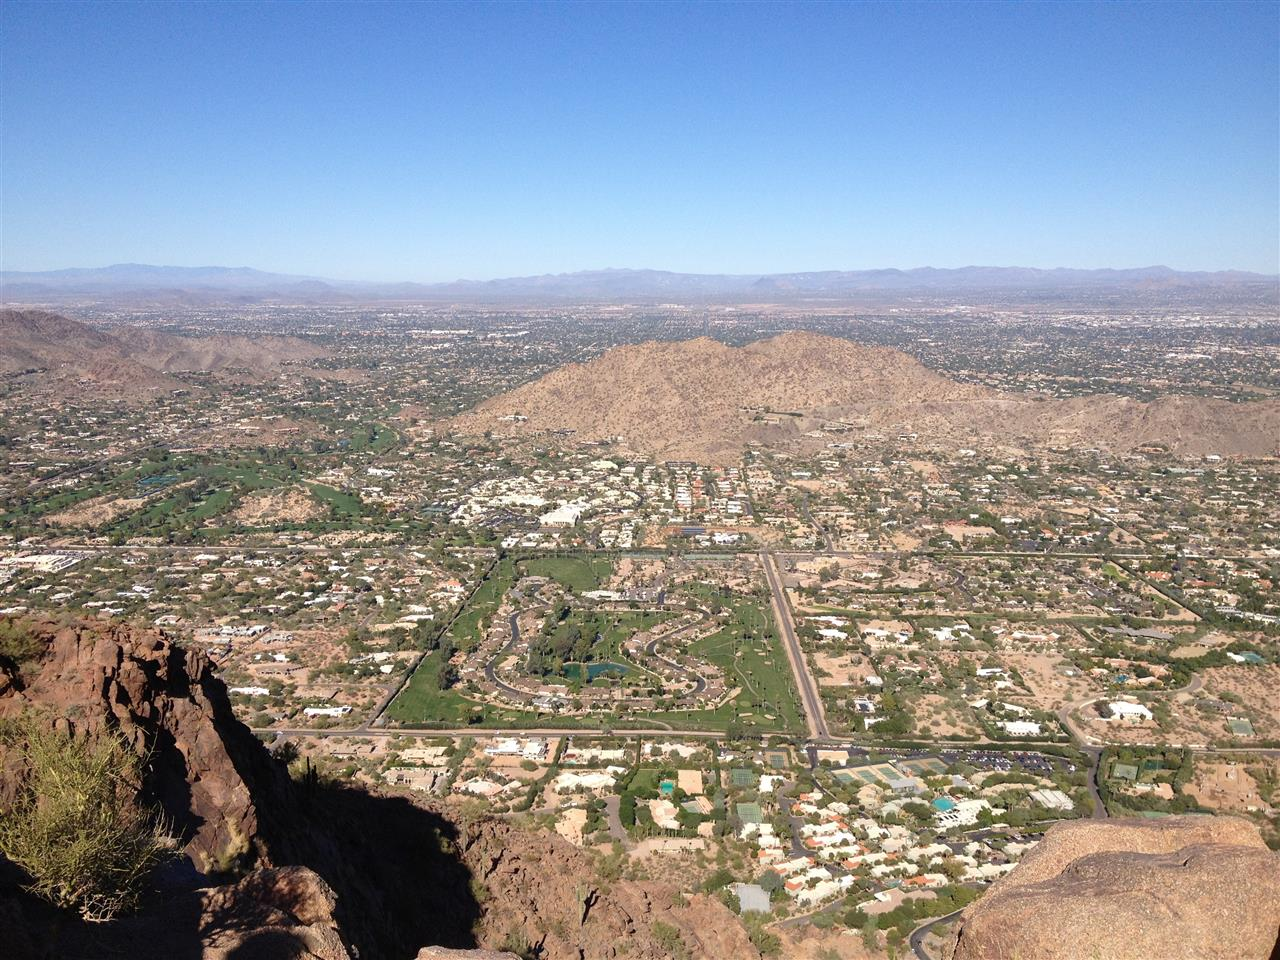 Echo Canyon looking east from Camelback Mountain, Paradise Valley, AZ